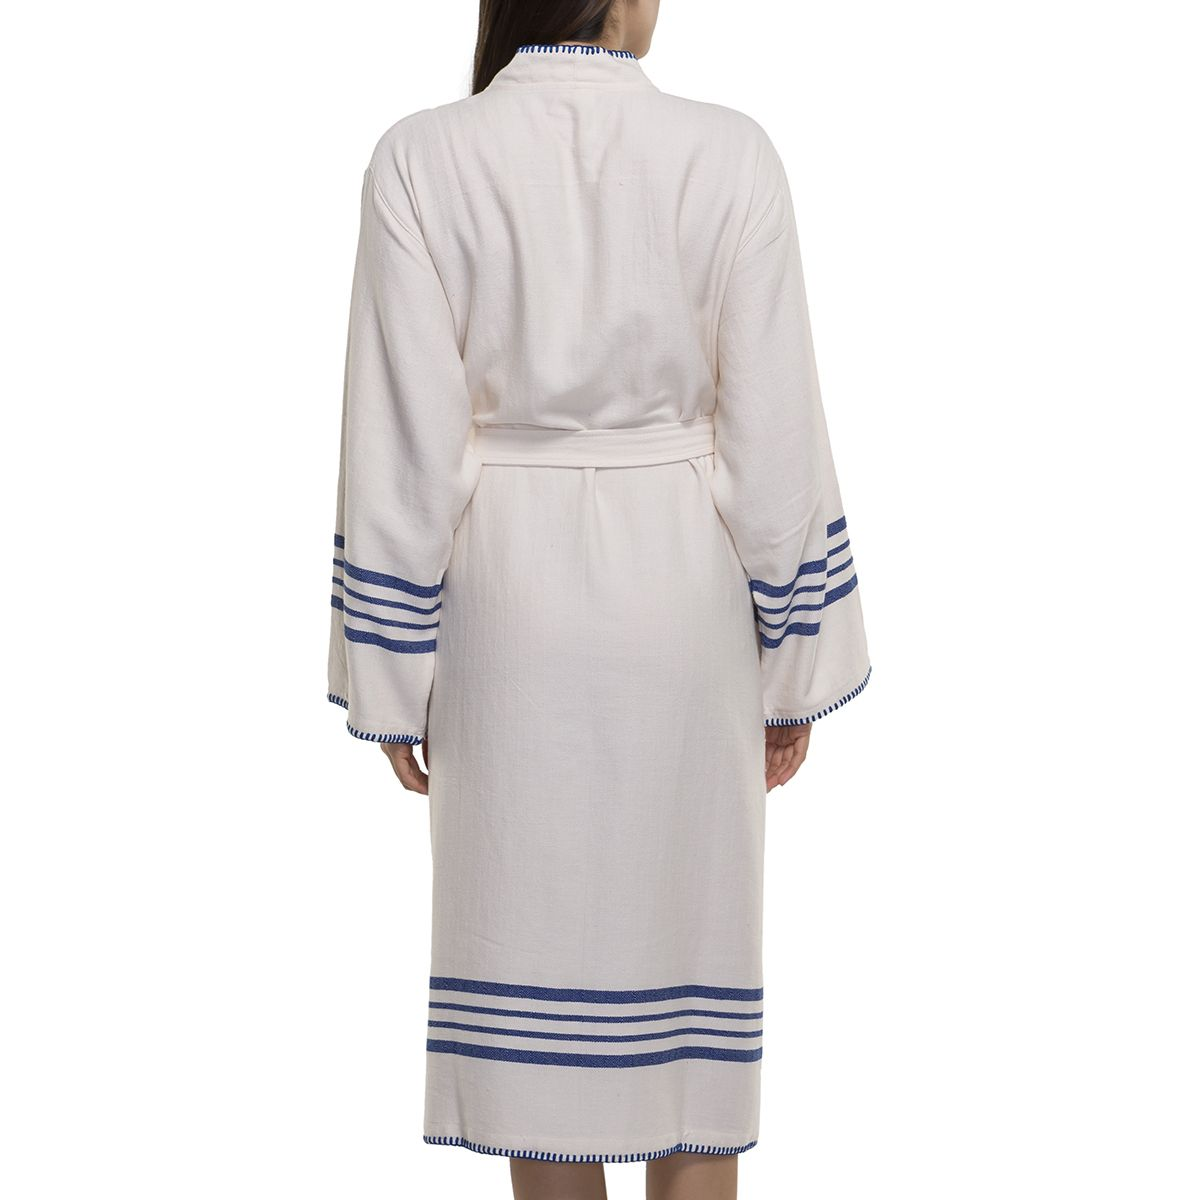 Bathrobe Coban Sultan / Royal Blue Stripes